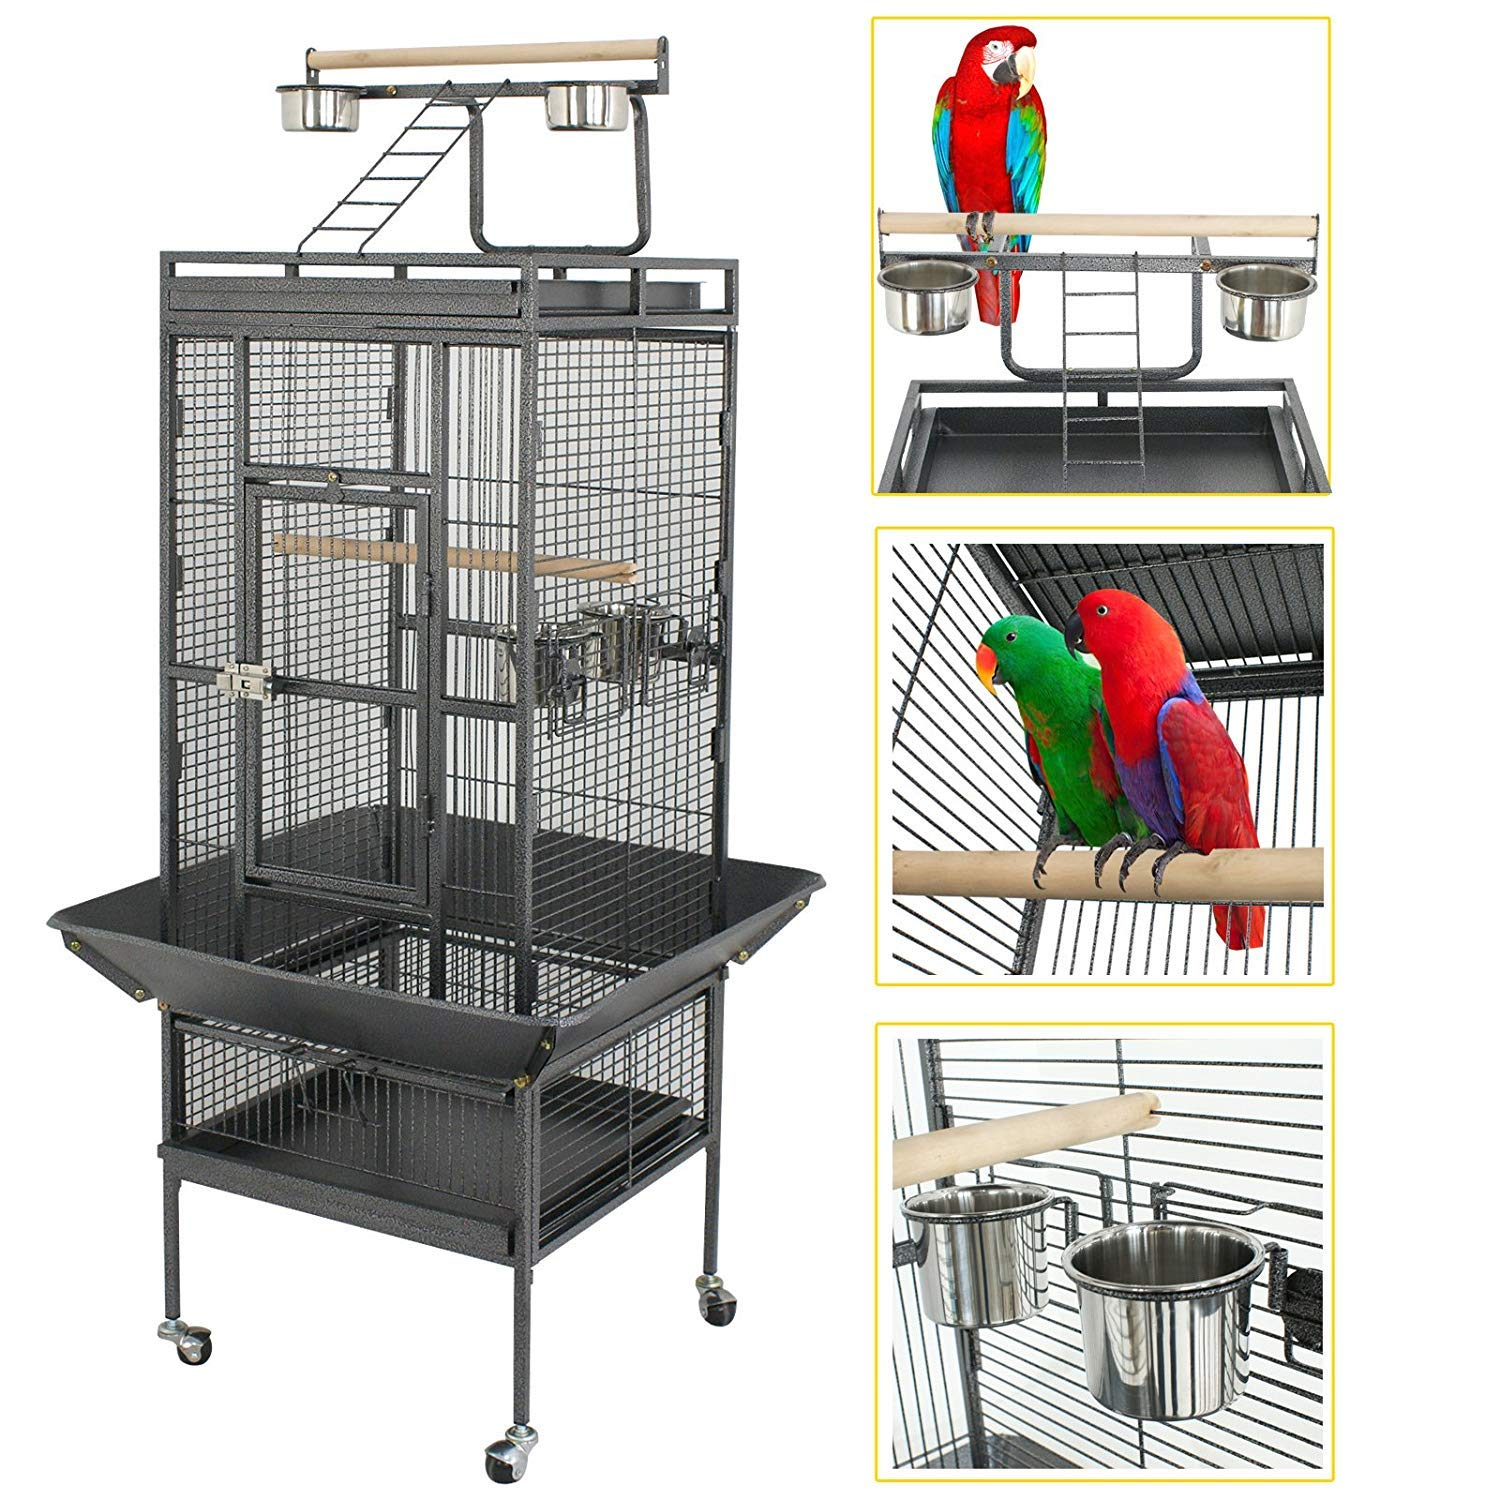 YOUKE Large Bird Cage with Play Top & Rolling Stand - Parrot Chinchilla Cage Macaw Cockatiel Cockatoo Pet House, 61 inch Wrought Iron by YOUKE